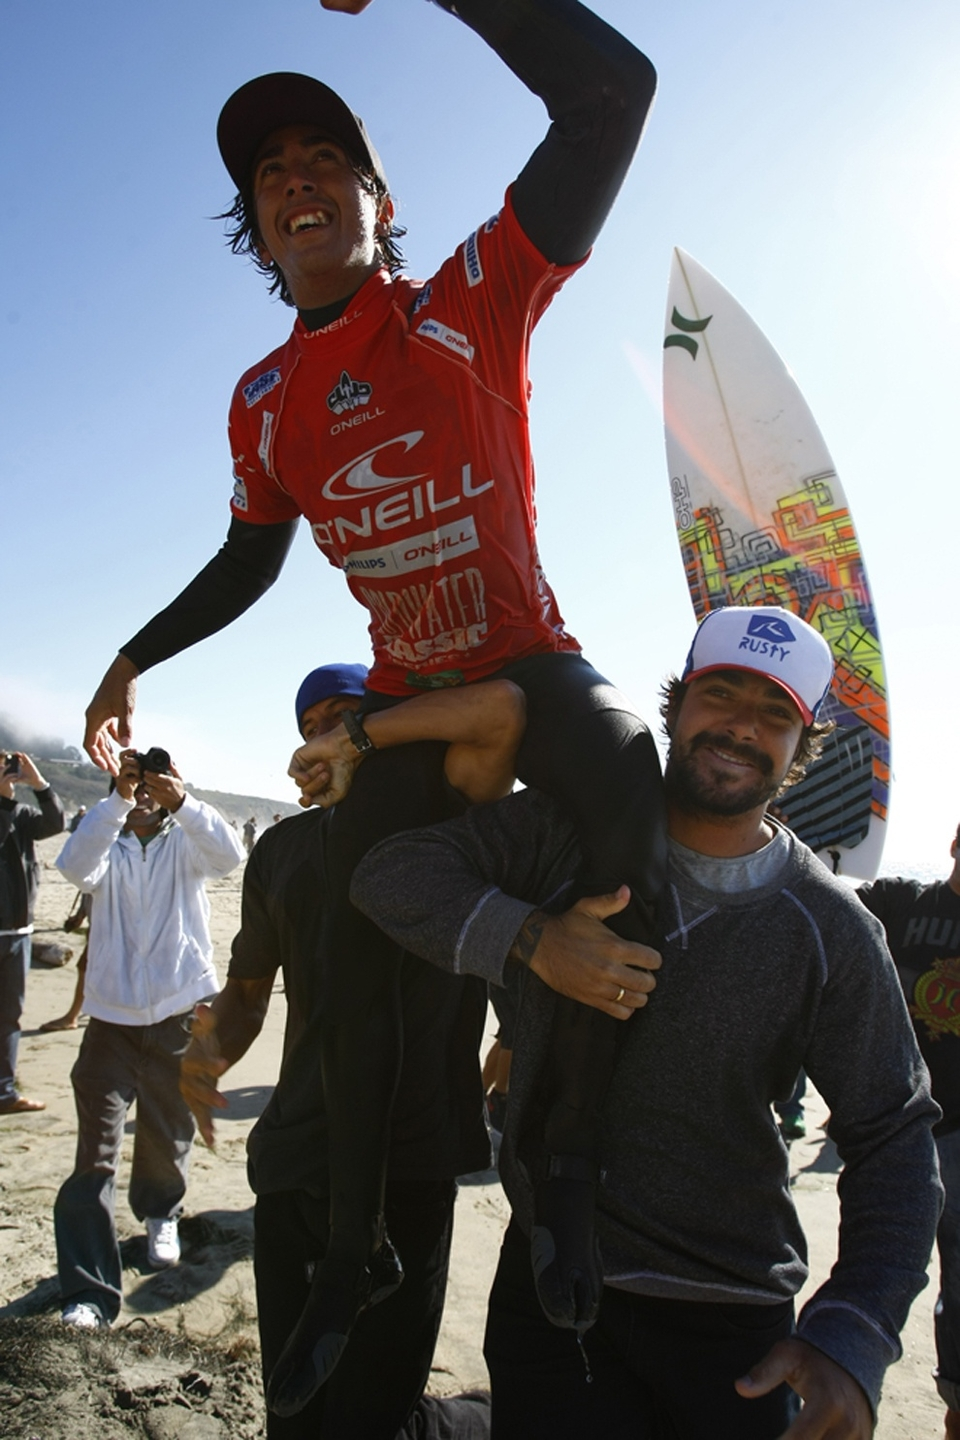 Miguel Pupo has won the O'Neill  Cold Water Classic  Santa Cruz as well as the O'Neill Cold Water Classic Series 2011, walking away with a total of $90,000 prize money at this ASP Prime Event.